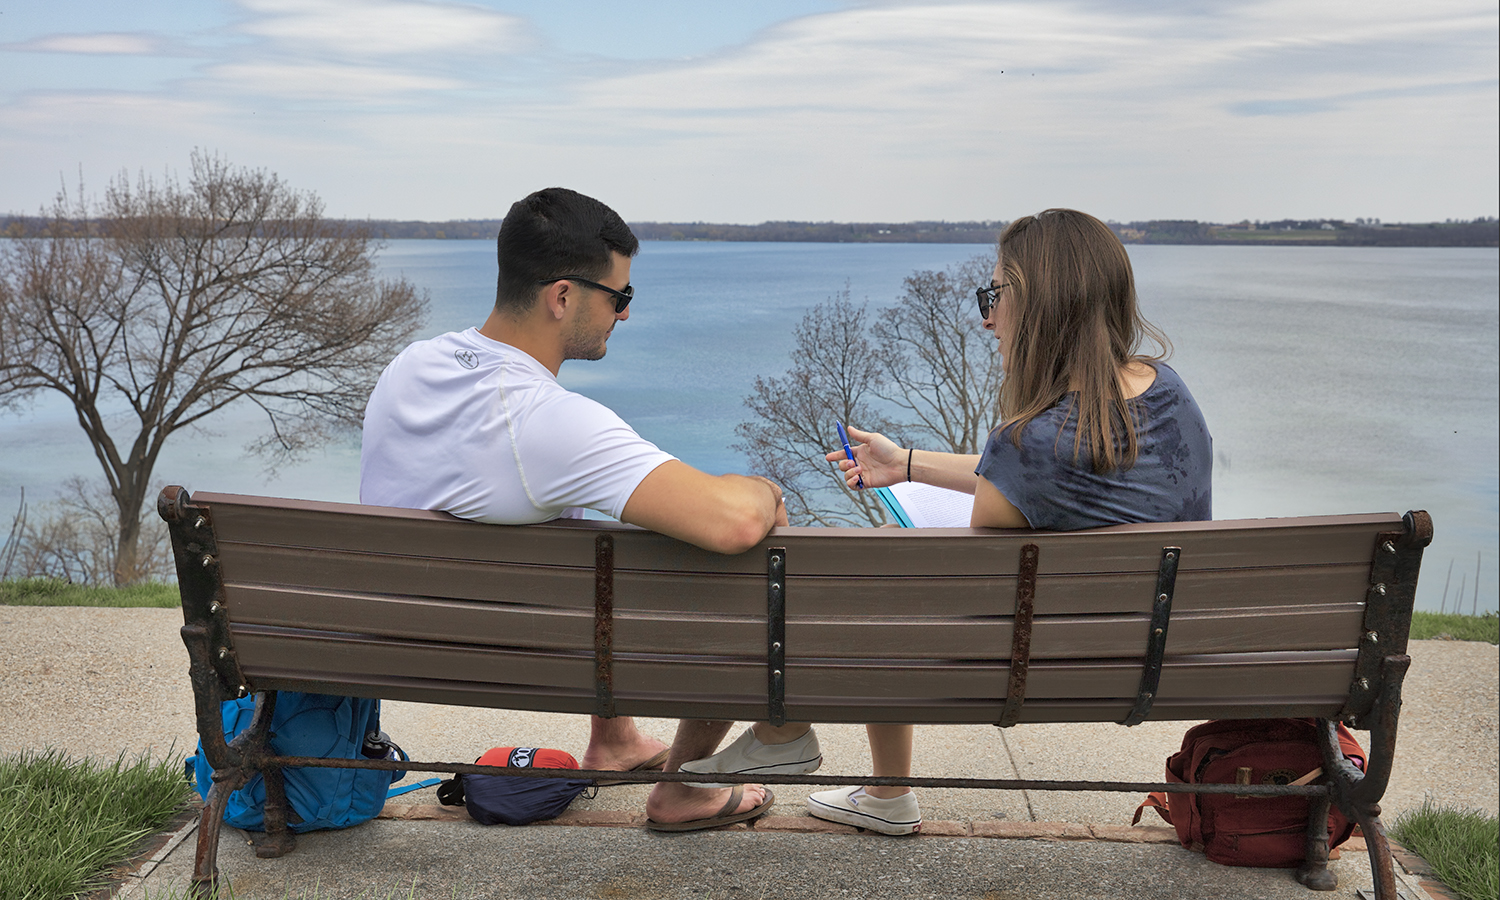 Students enjoy the view of Seneca Lake while studying on South Main Street.